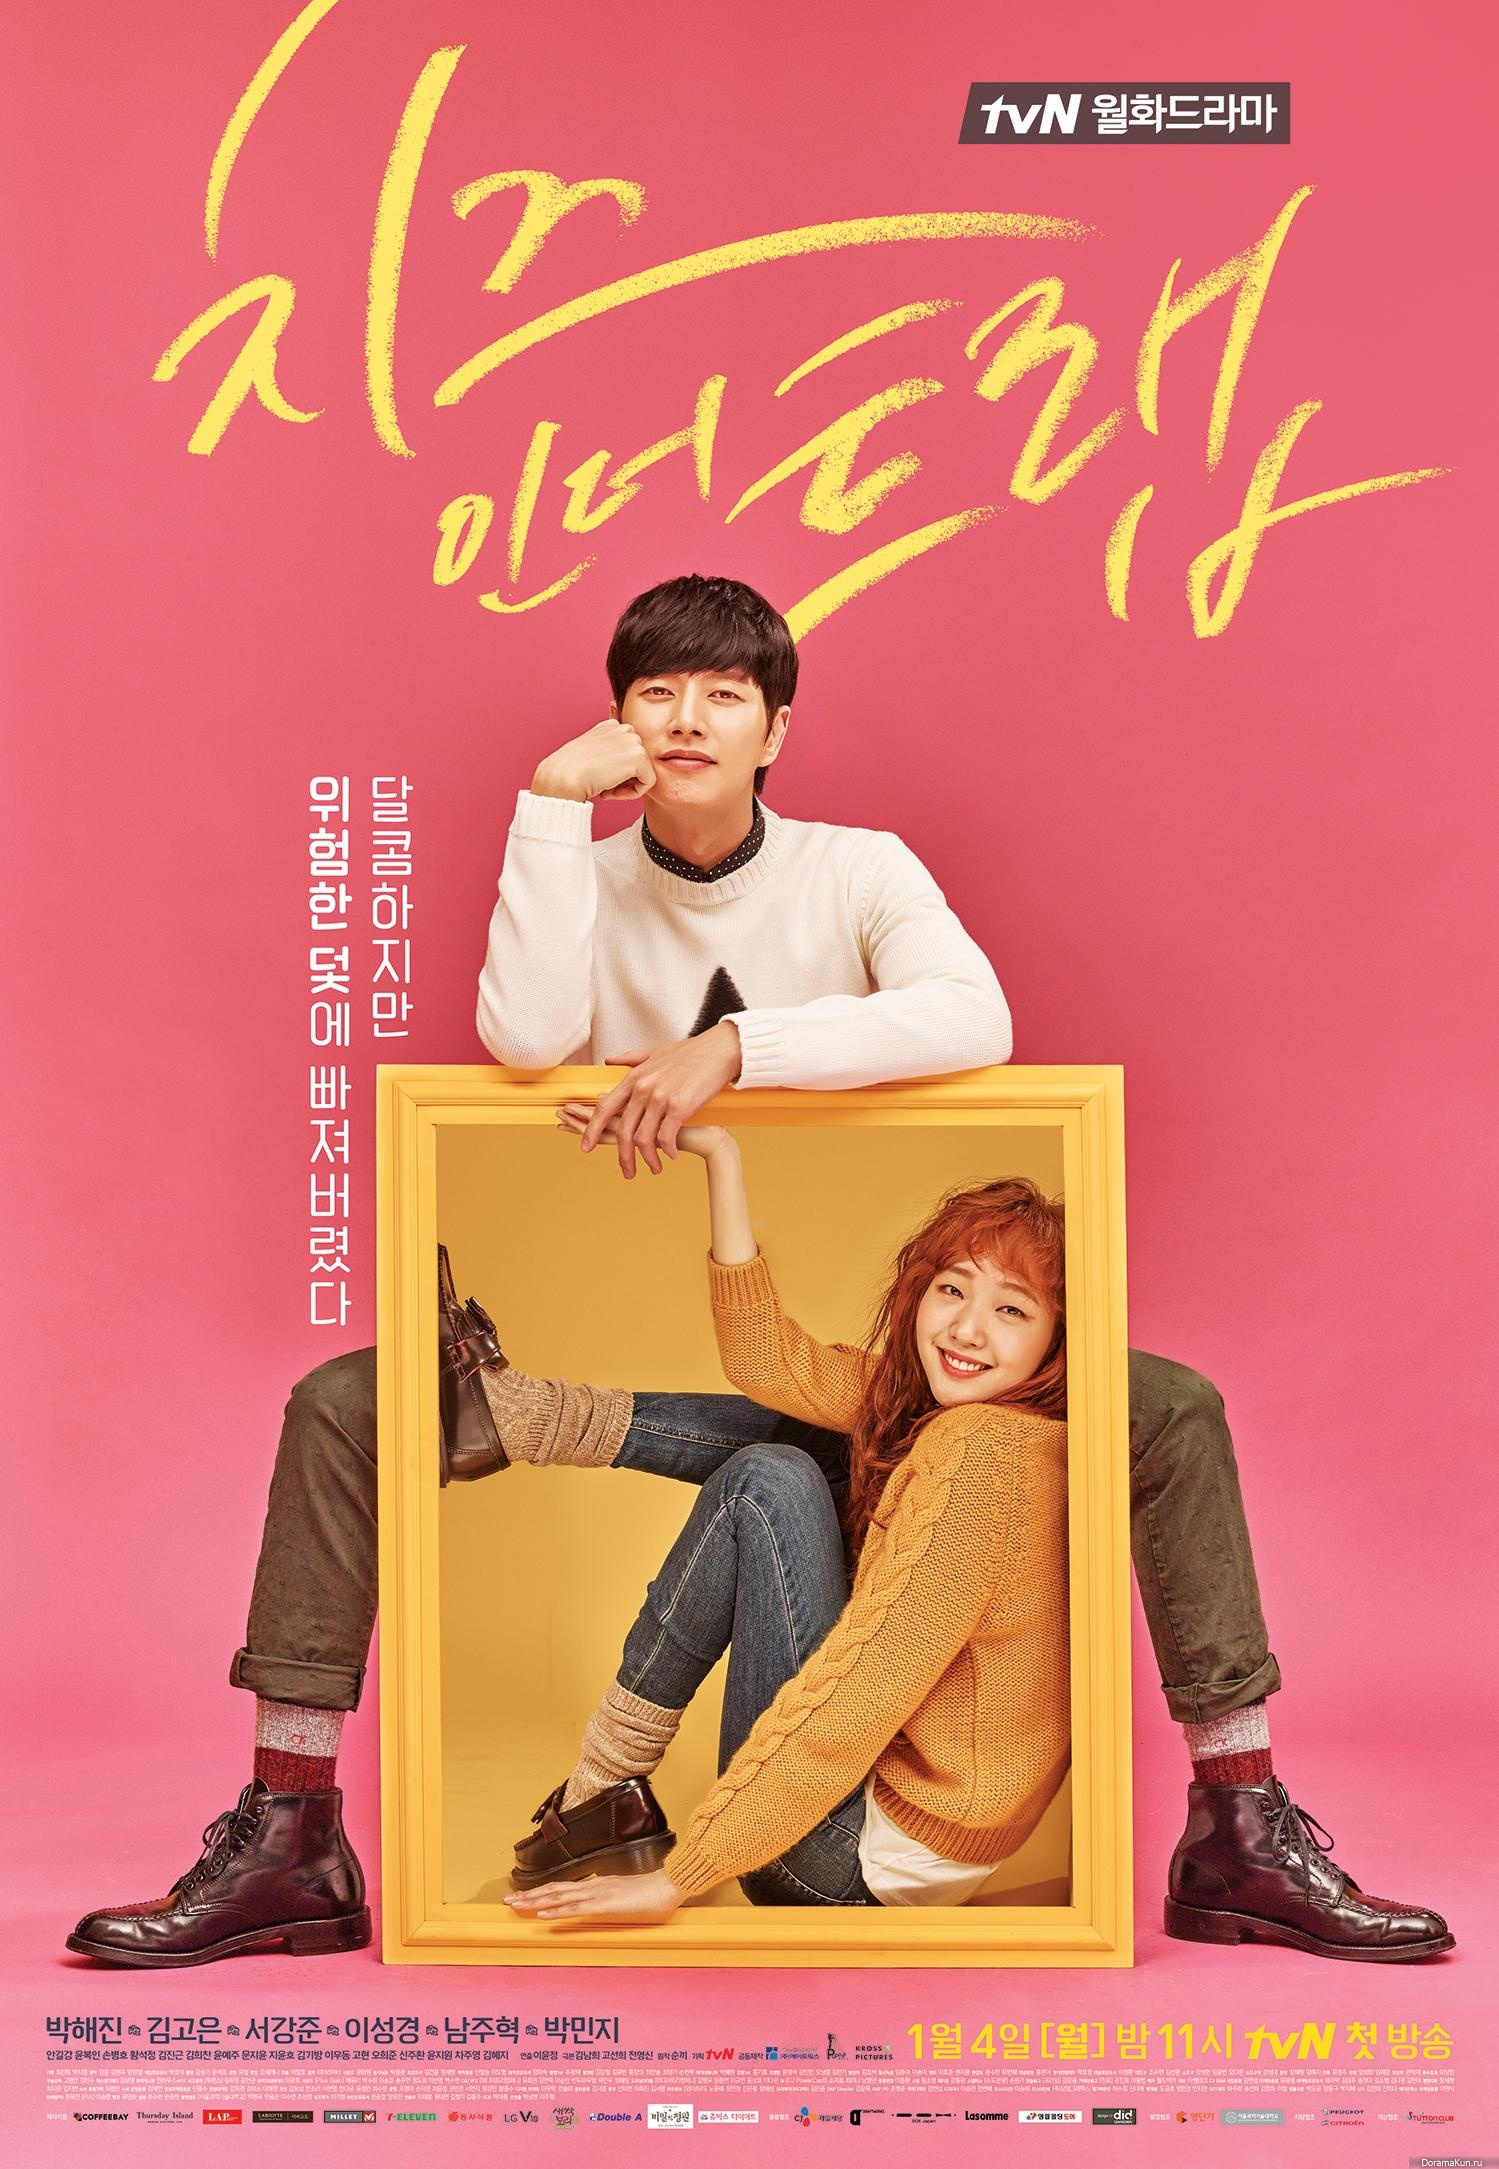 Сыр в мышеловке/Cheese in the trap (2016) - Страница 2 Cheese-in-the-Trap-Poster1-1499